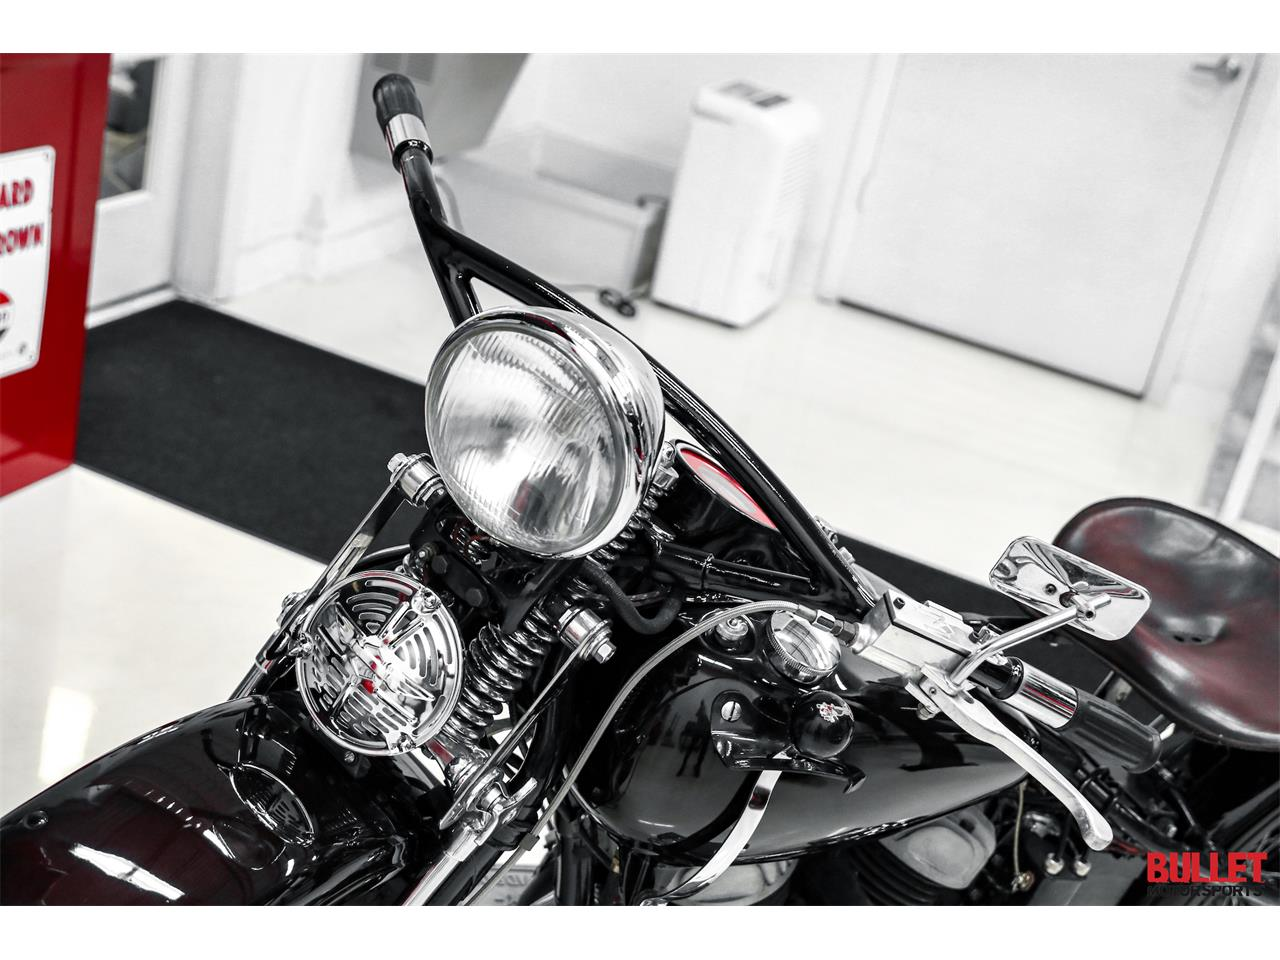 1946 Harley-Davidson Motorcycle for sale in Fort Lauderdale, FL – photo 4